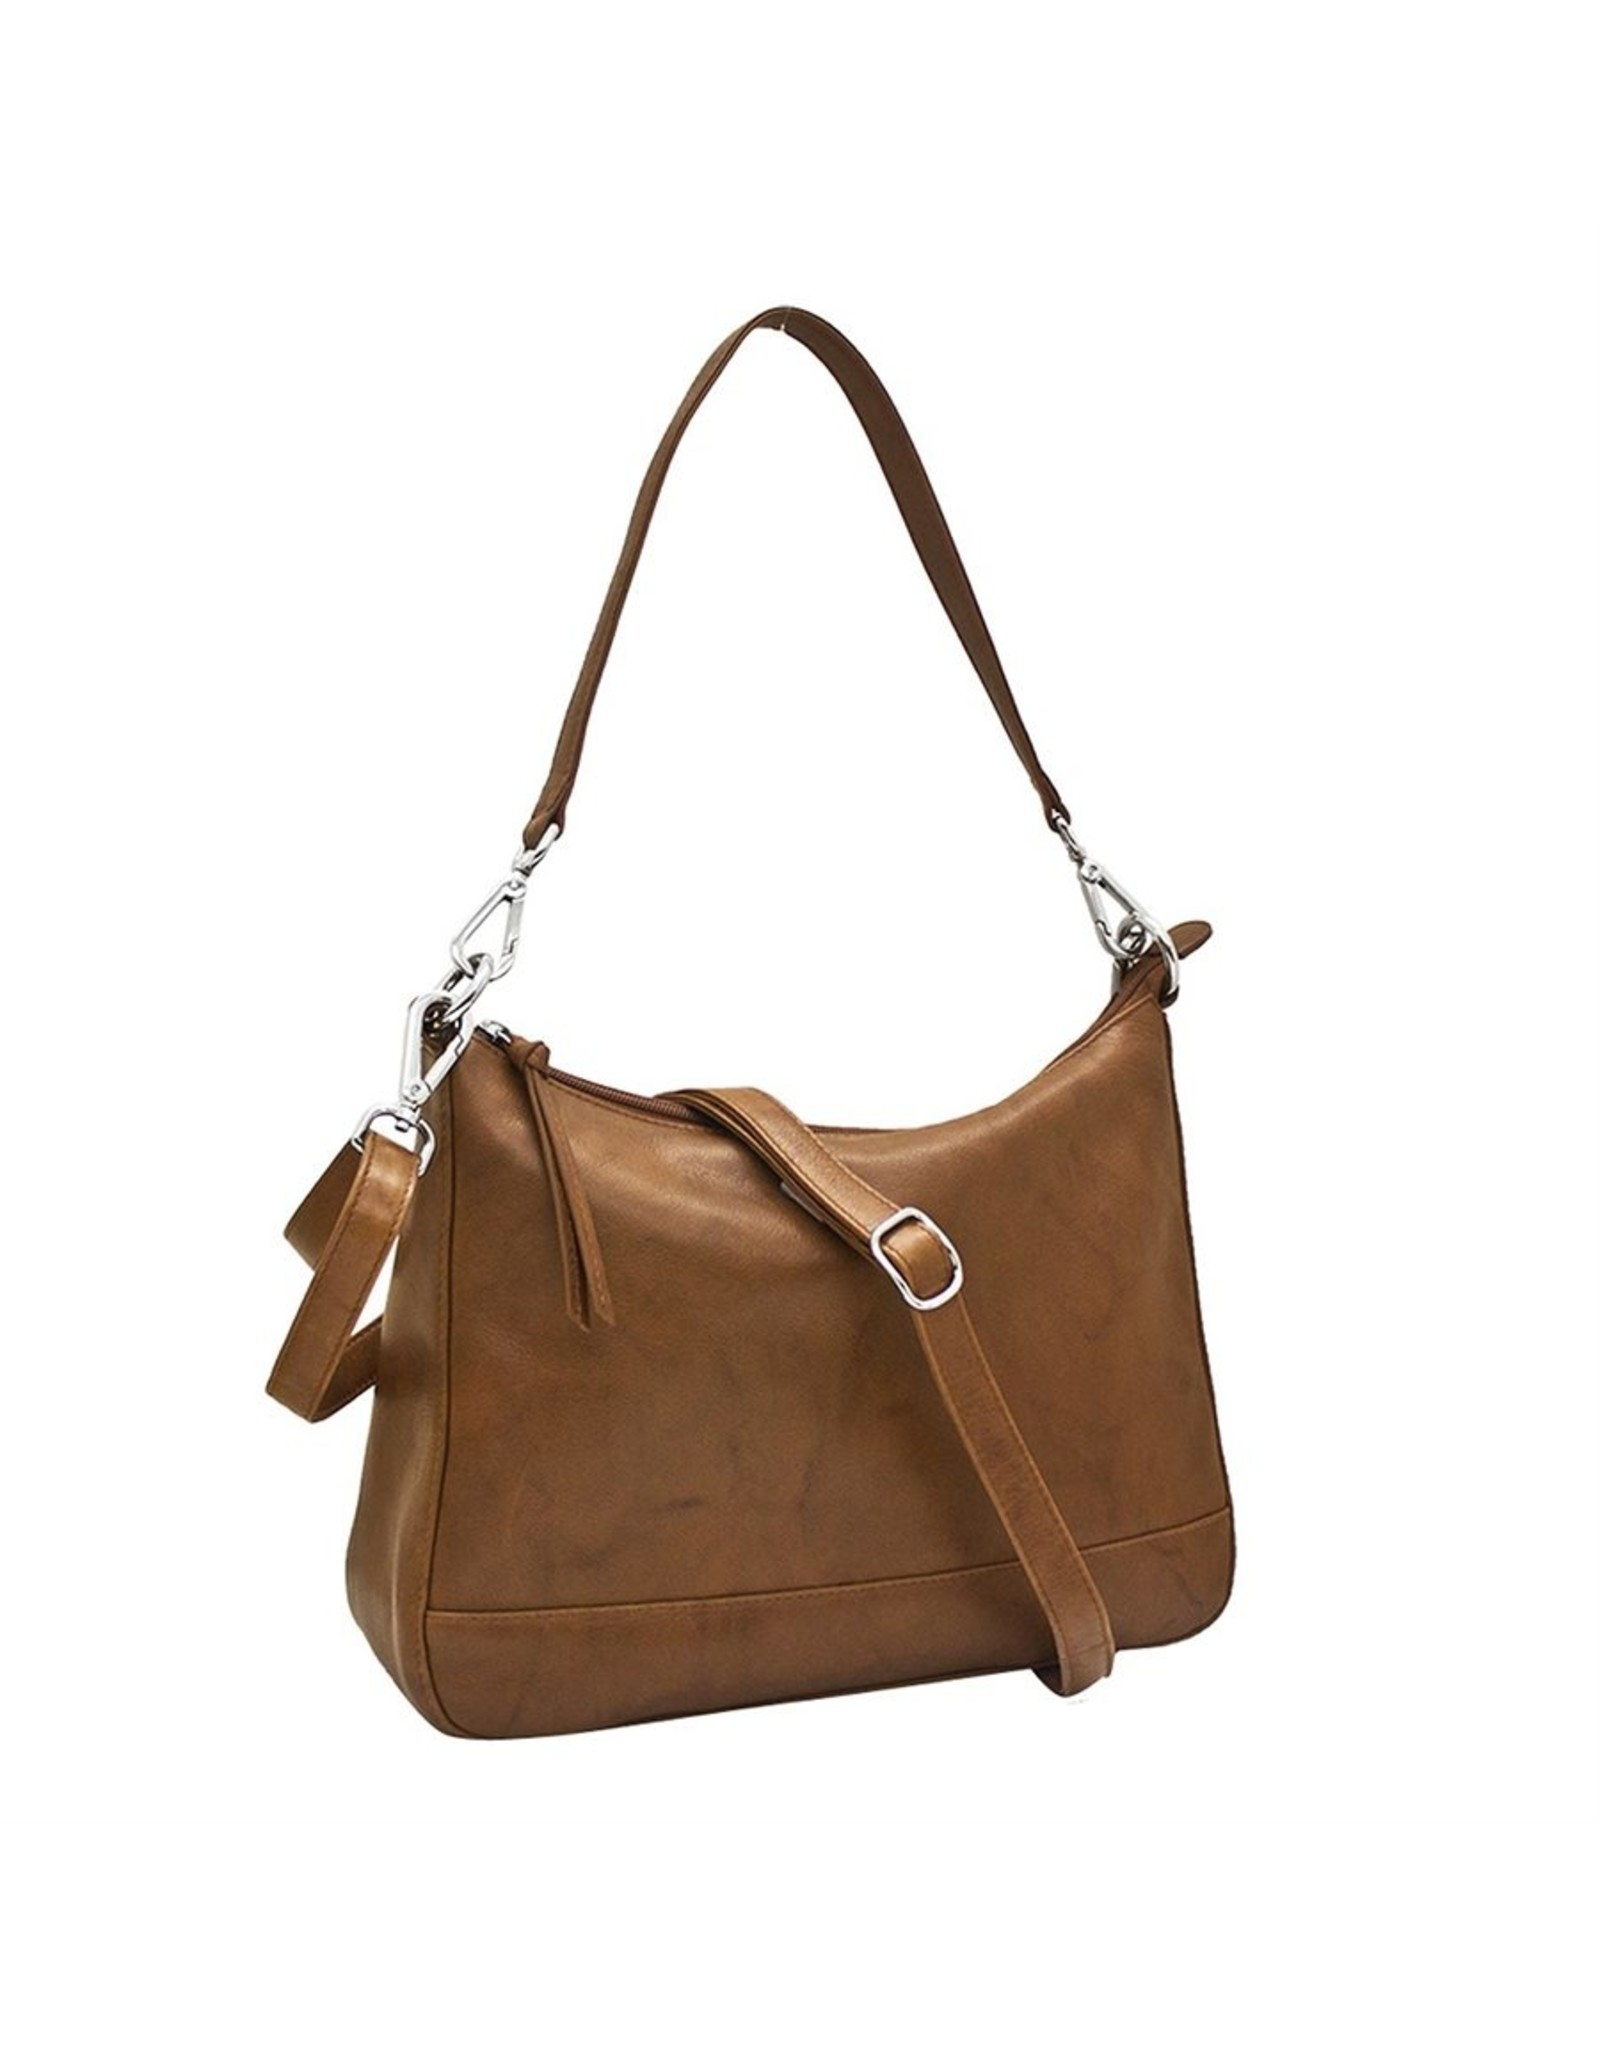 Leather Handbags and Accessories 6091 Antique Saddle - Zip Top Hobo